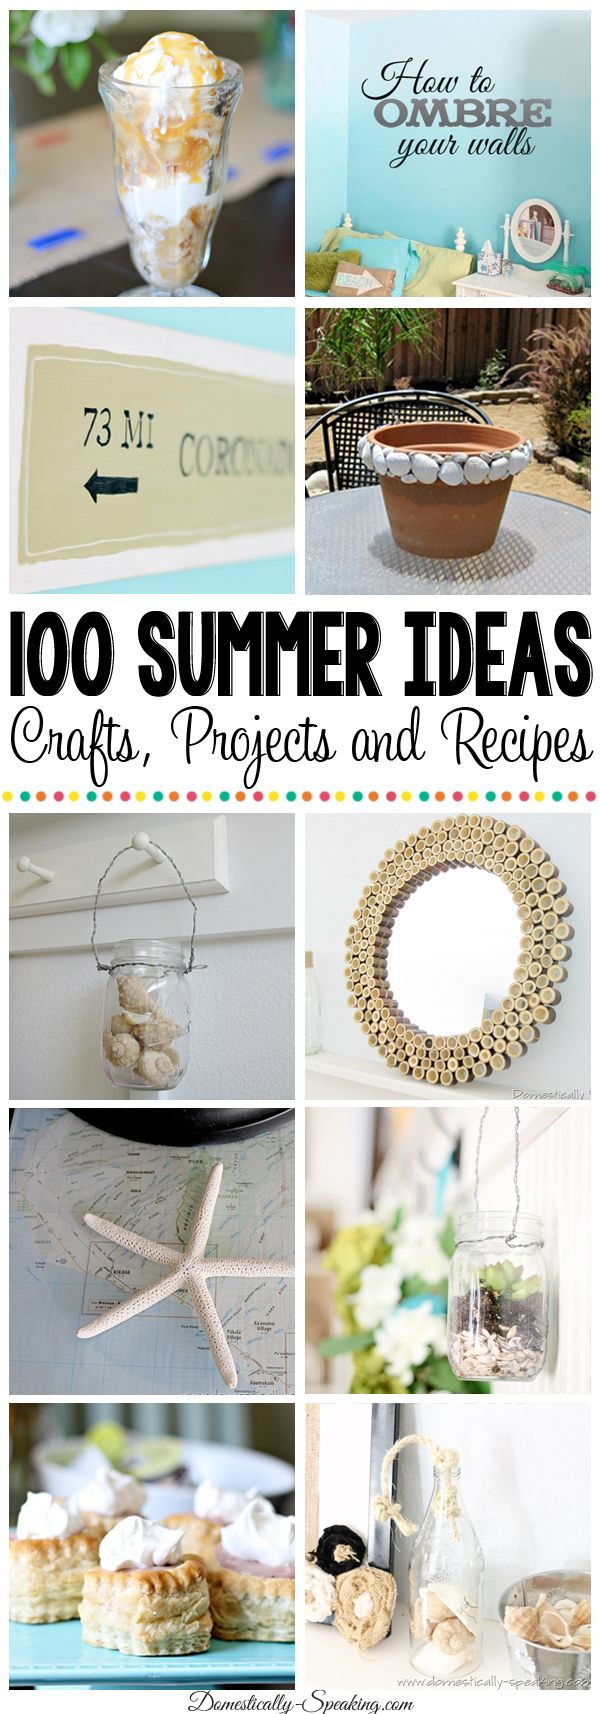 Over 100 Summer Crafts, Projects and Recipes that you'll LOVE!